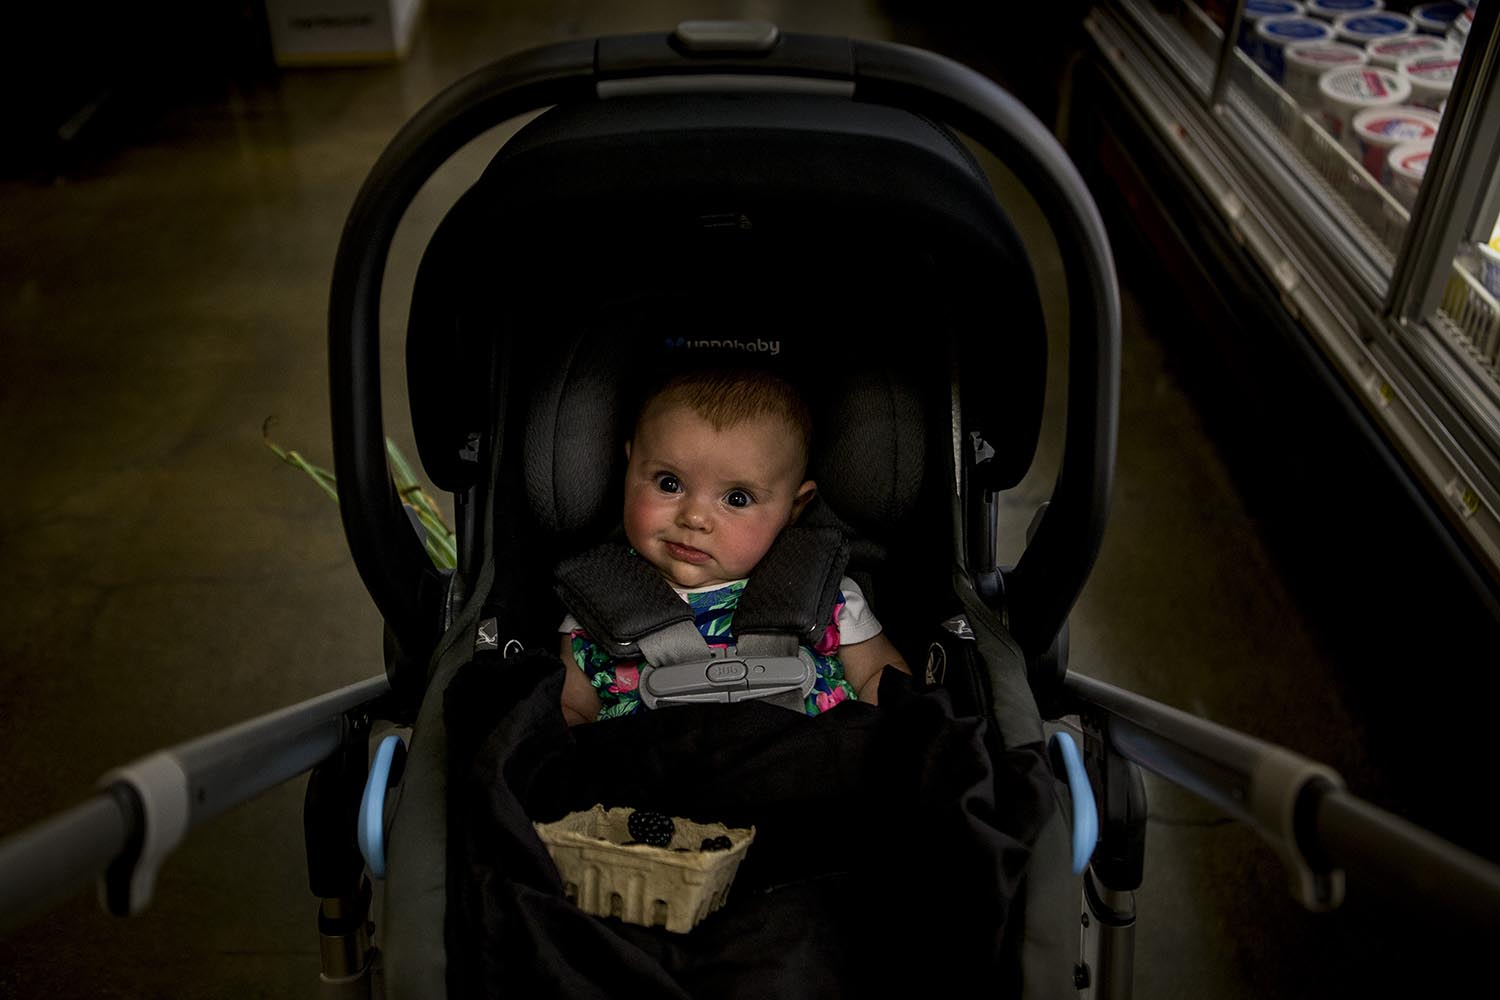 unique boston baby portrait of a child in a stroller in the supermarket